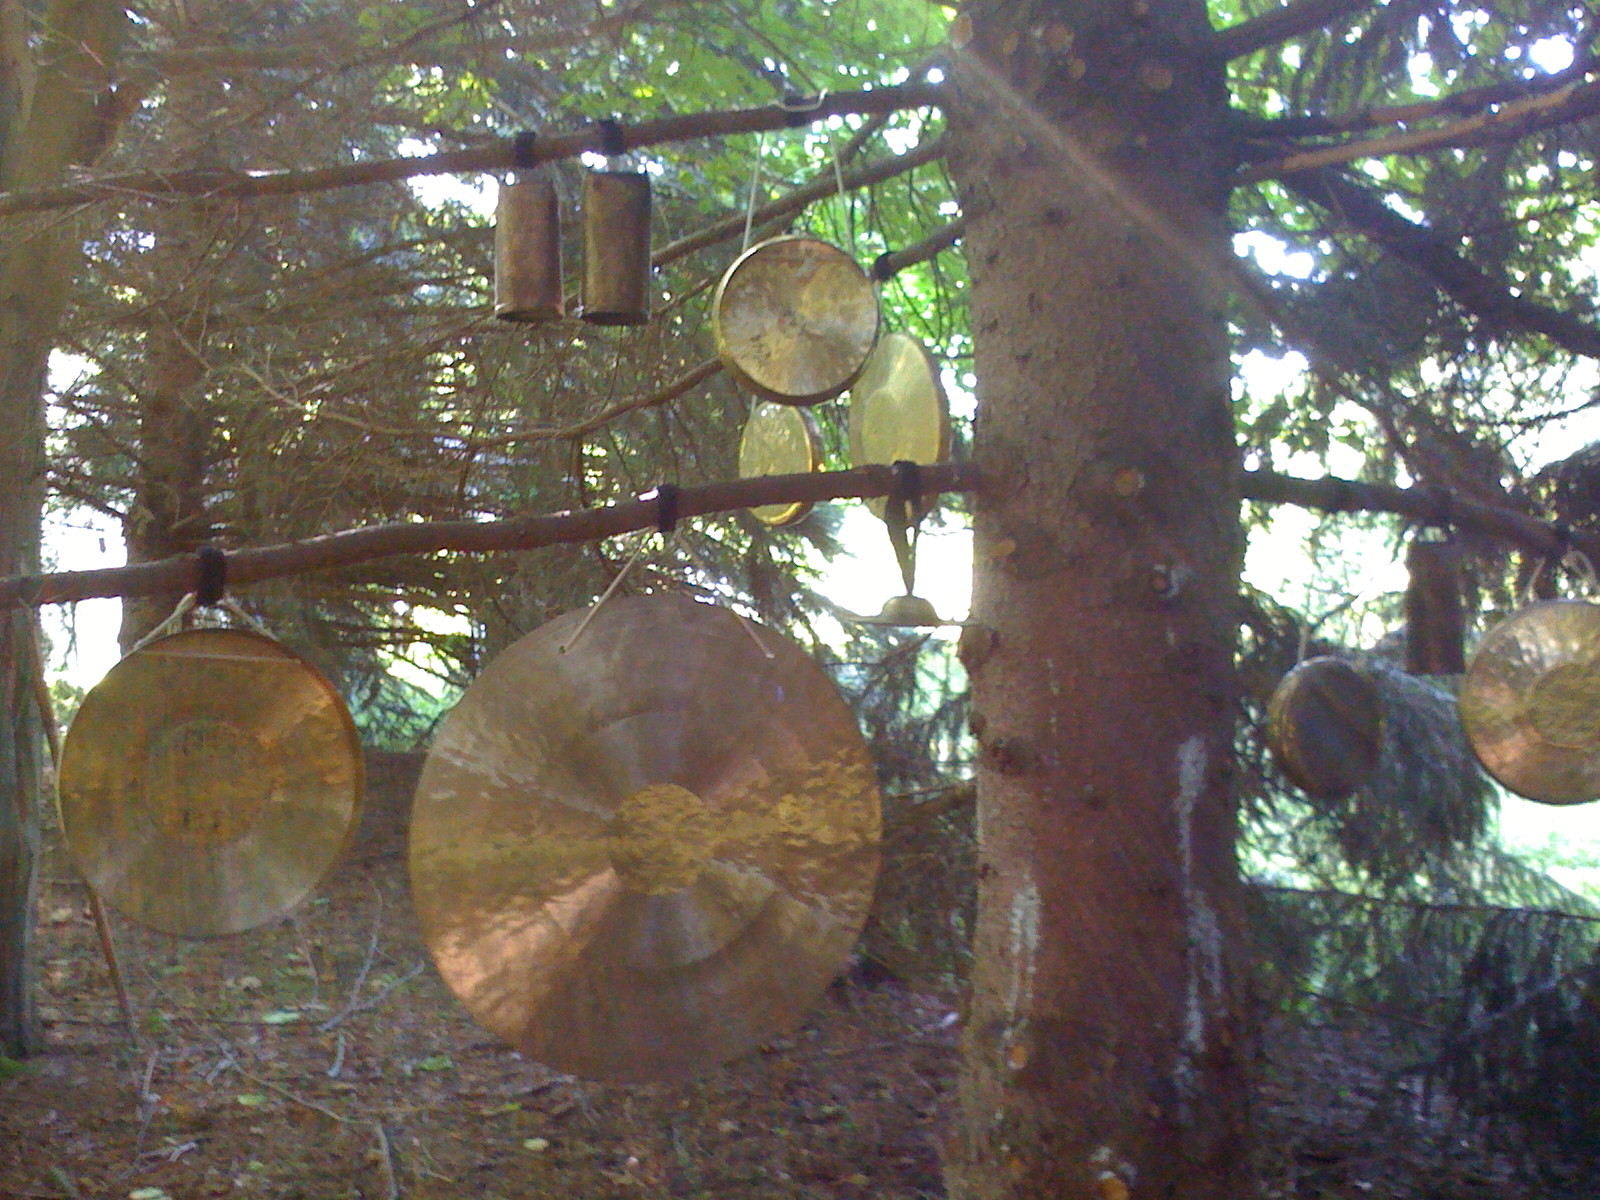 Gong trees for Grain of Sand film shoot, Ravenna, OH